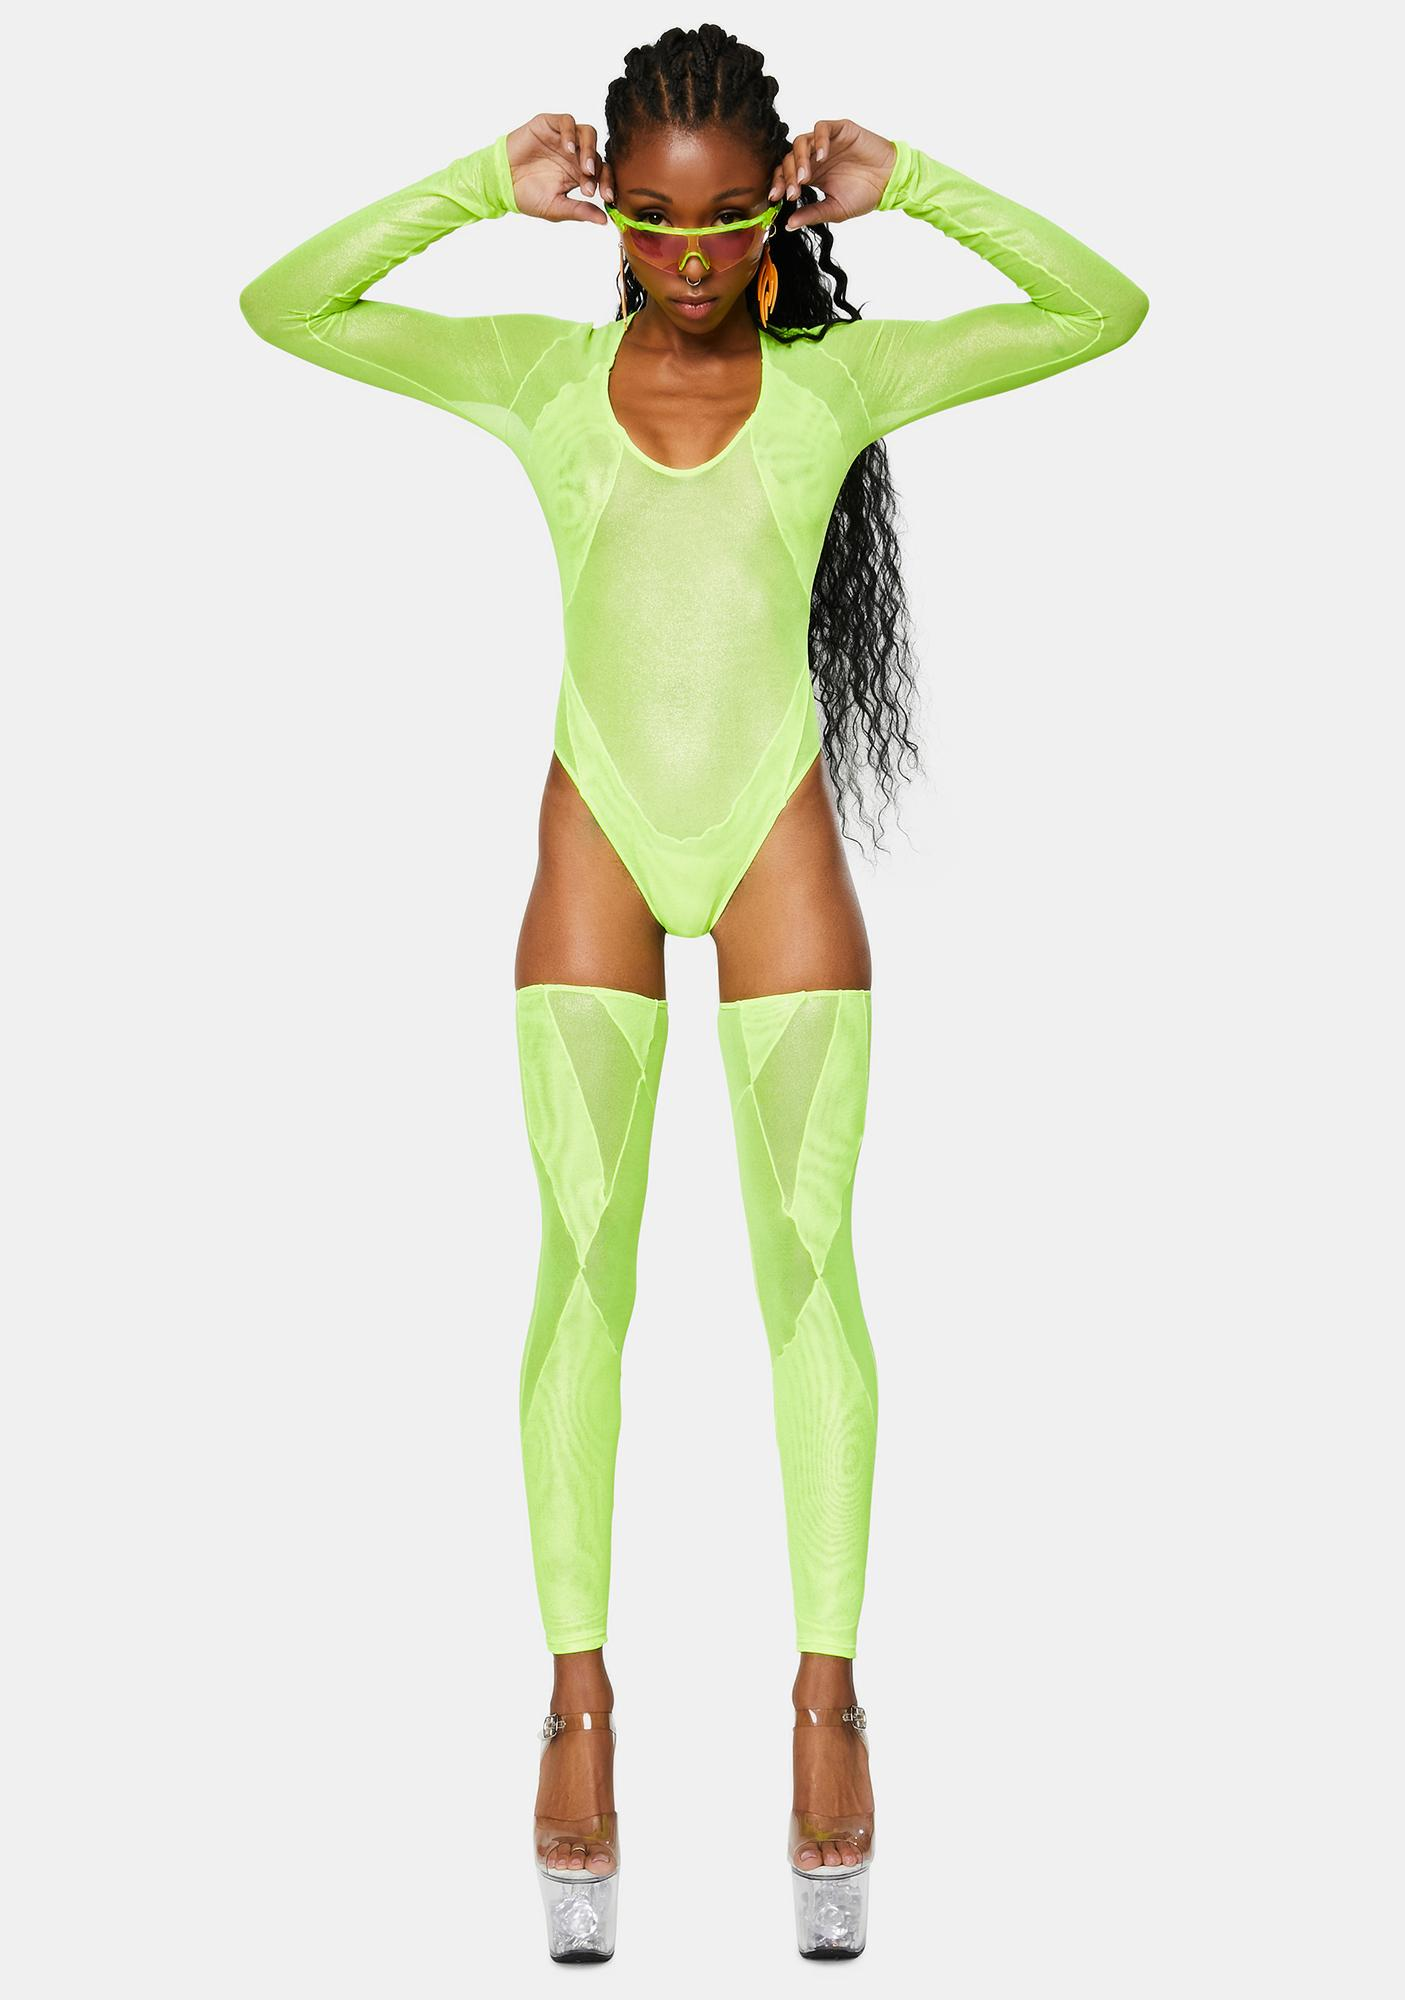 Club Exx Electric Chapel Mesh Bodysuit And Stockings Set